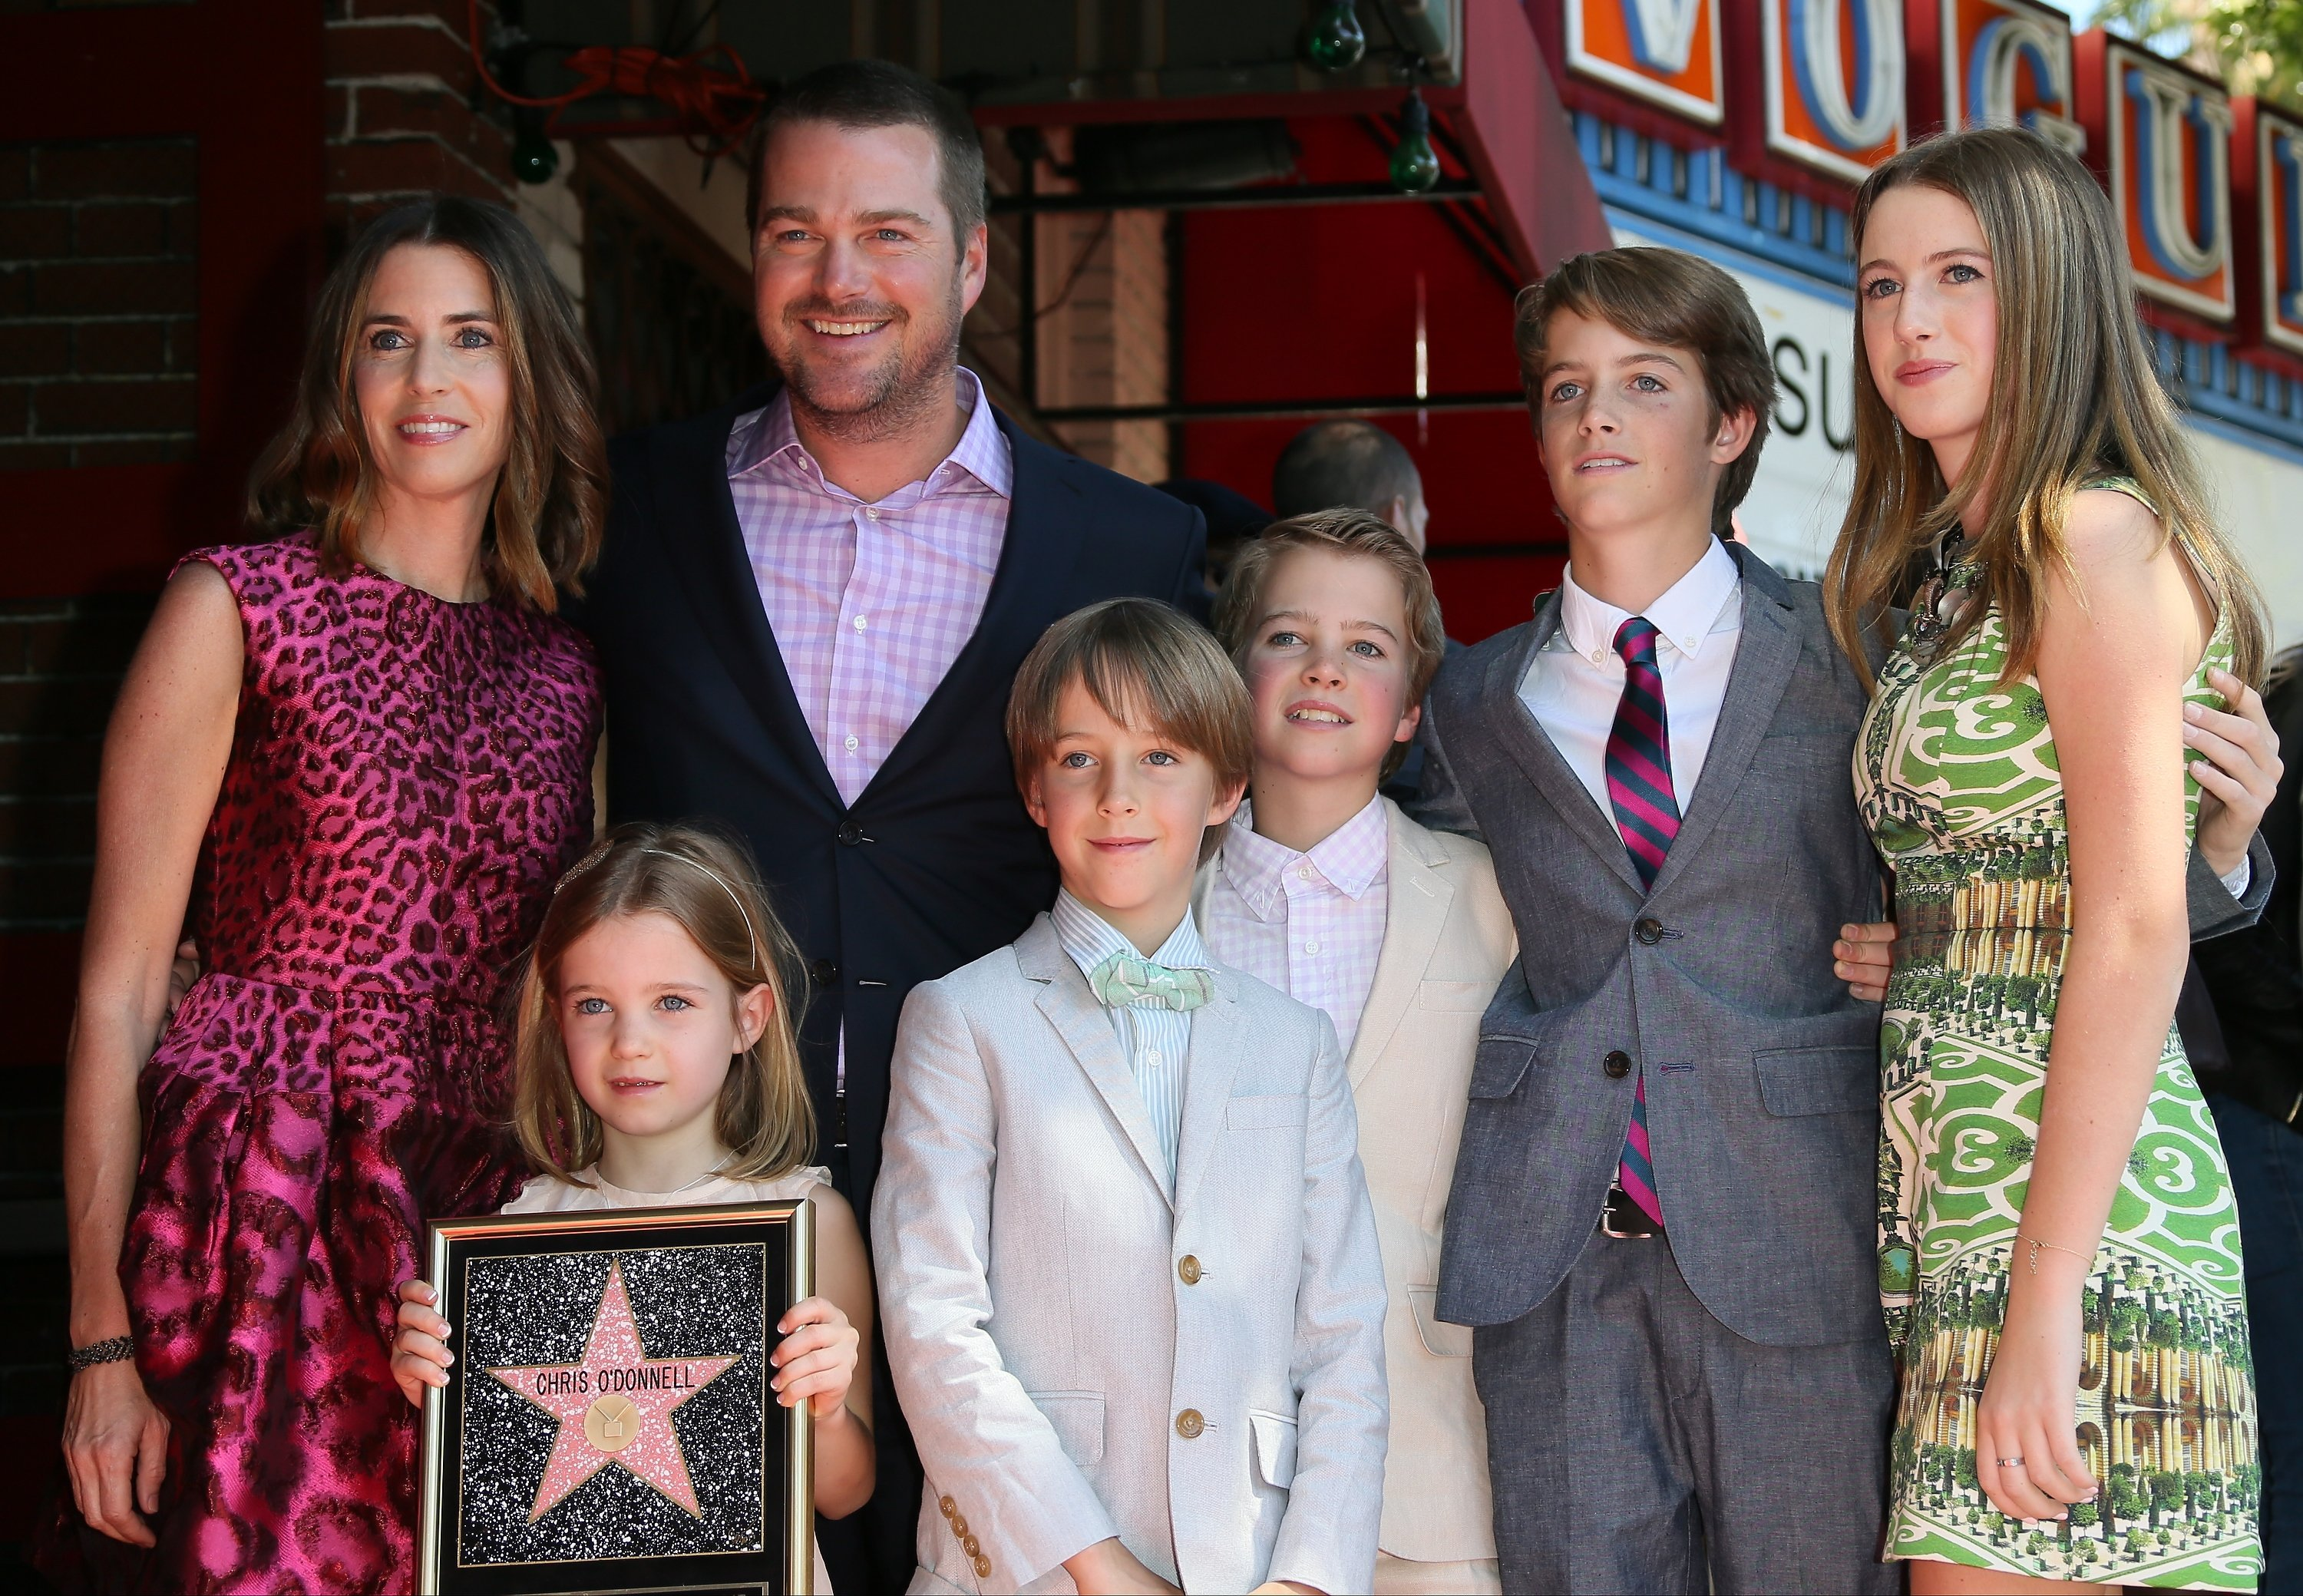 Image Source: Getty Images/Chris with his family